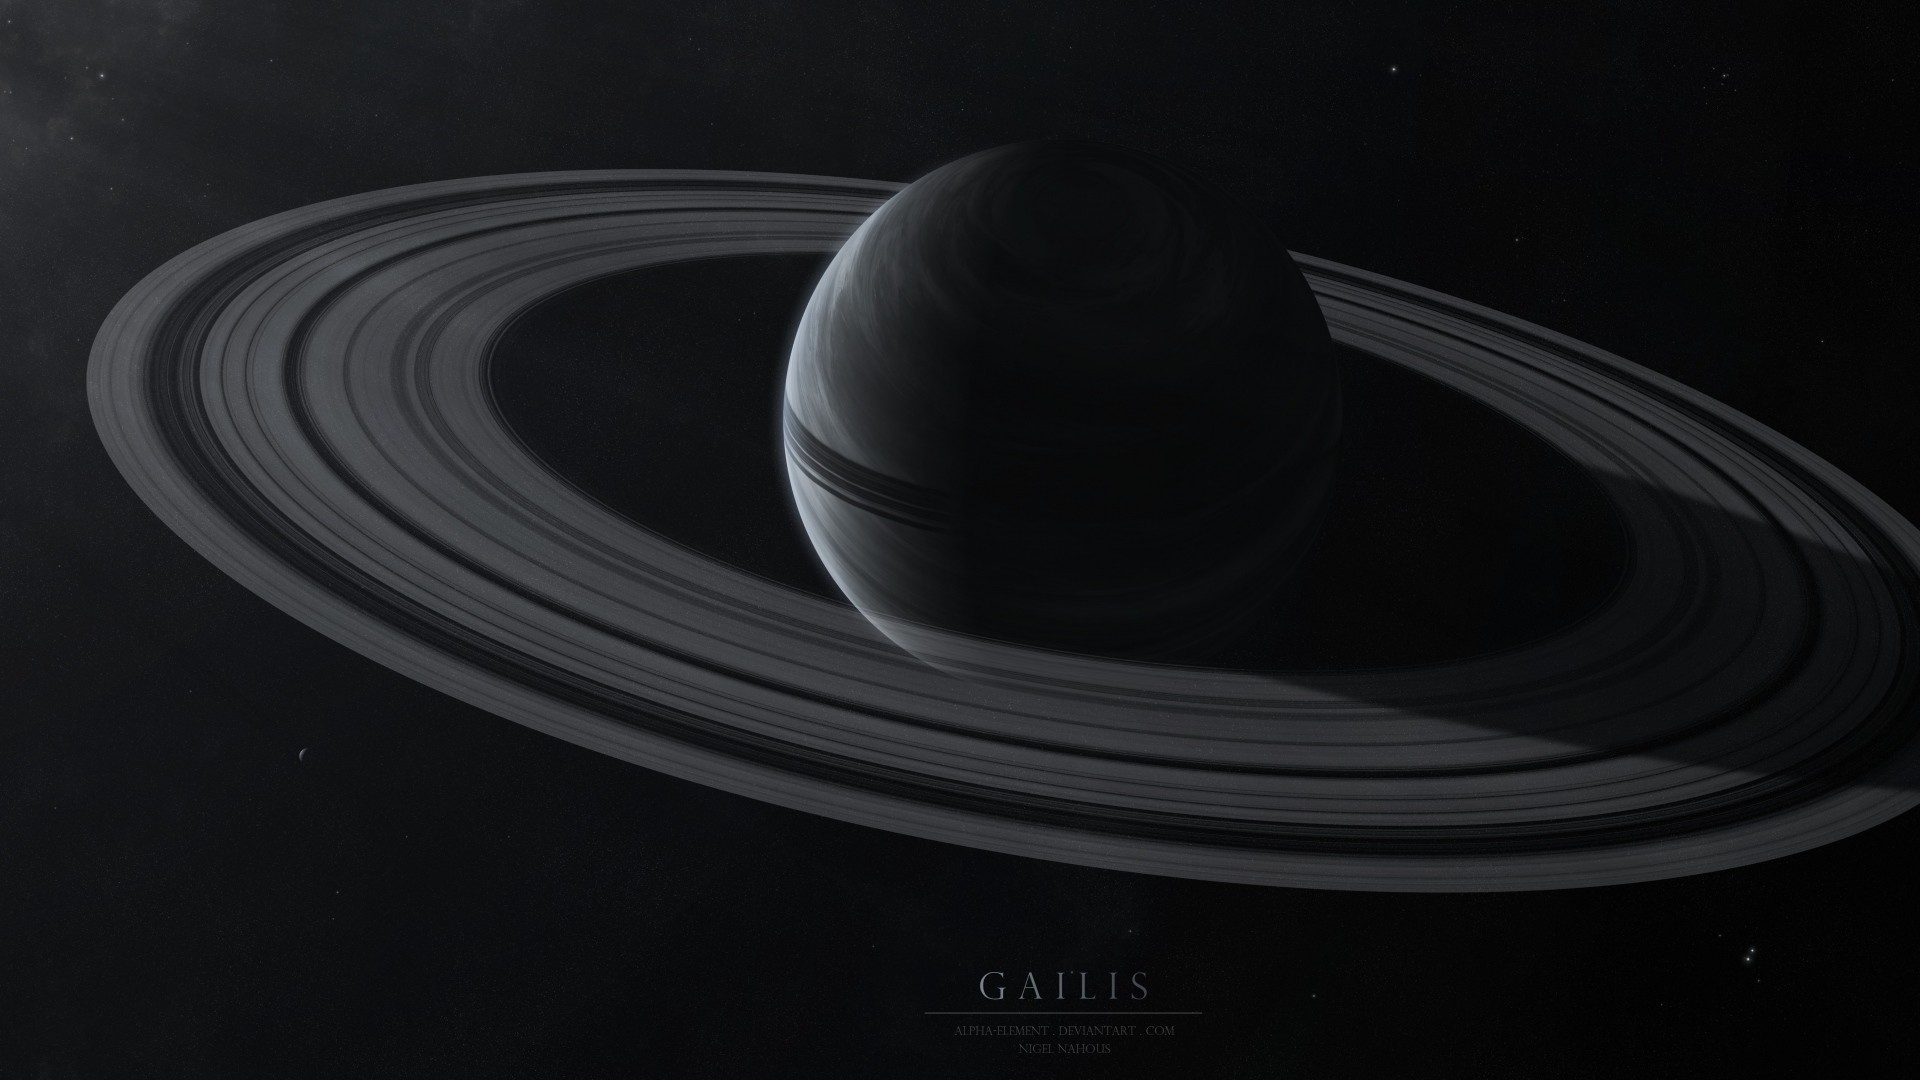 1920x1080 ... Background Full HD 1080p.  Wallpaper gailis, planet, rings,  stars, space